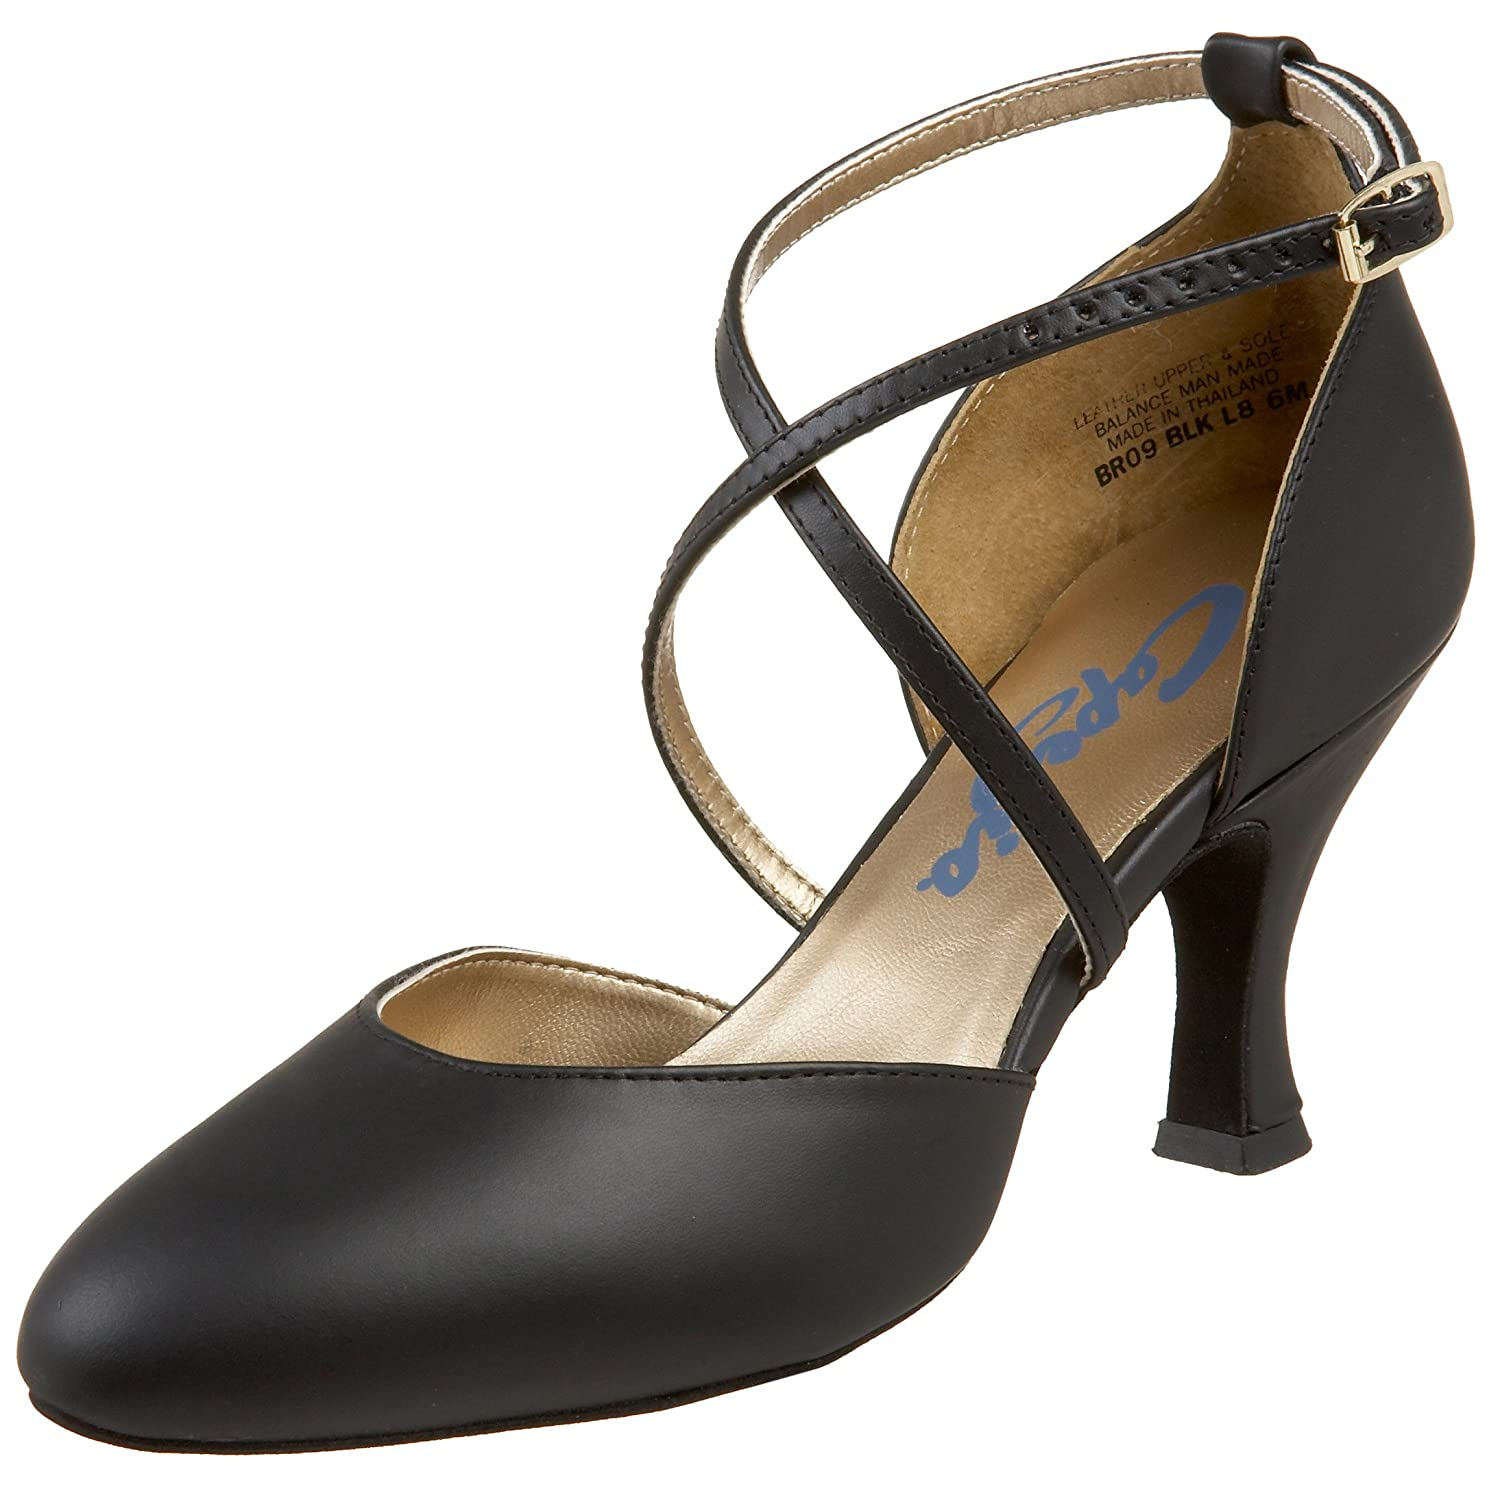 Retro Style Dance Shoes Capezio Womens BR09 X-Strap 2.5 Flared Heel Shoe $79.99 AT vintagedancer.com